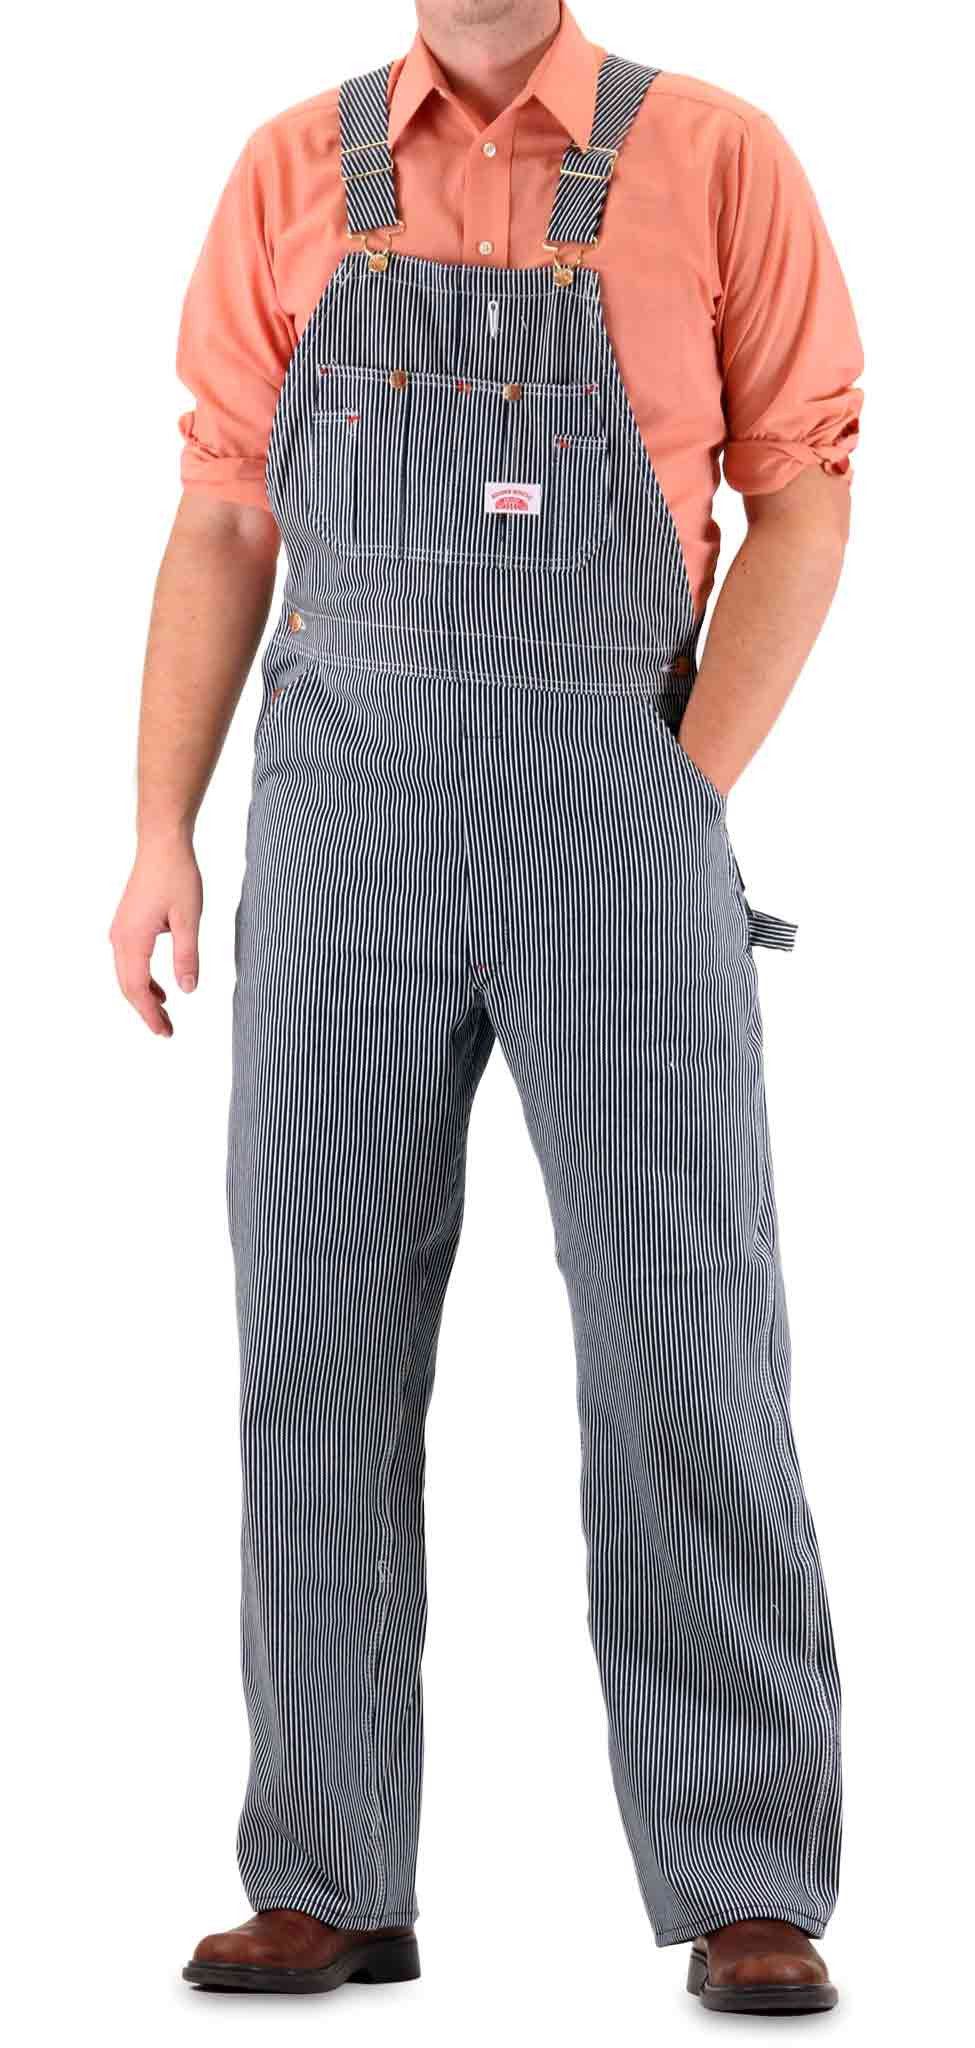 8384476c0d5 Vintage Hickory Stripe American Made Overalls Made in USA Bib ...